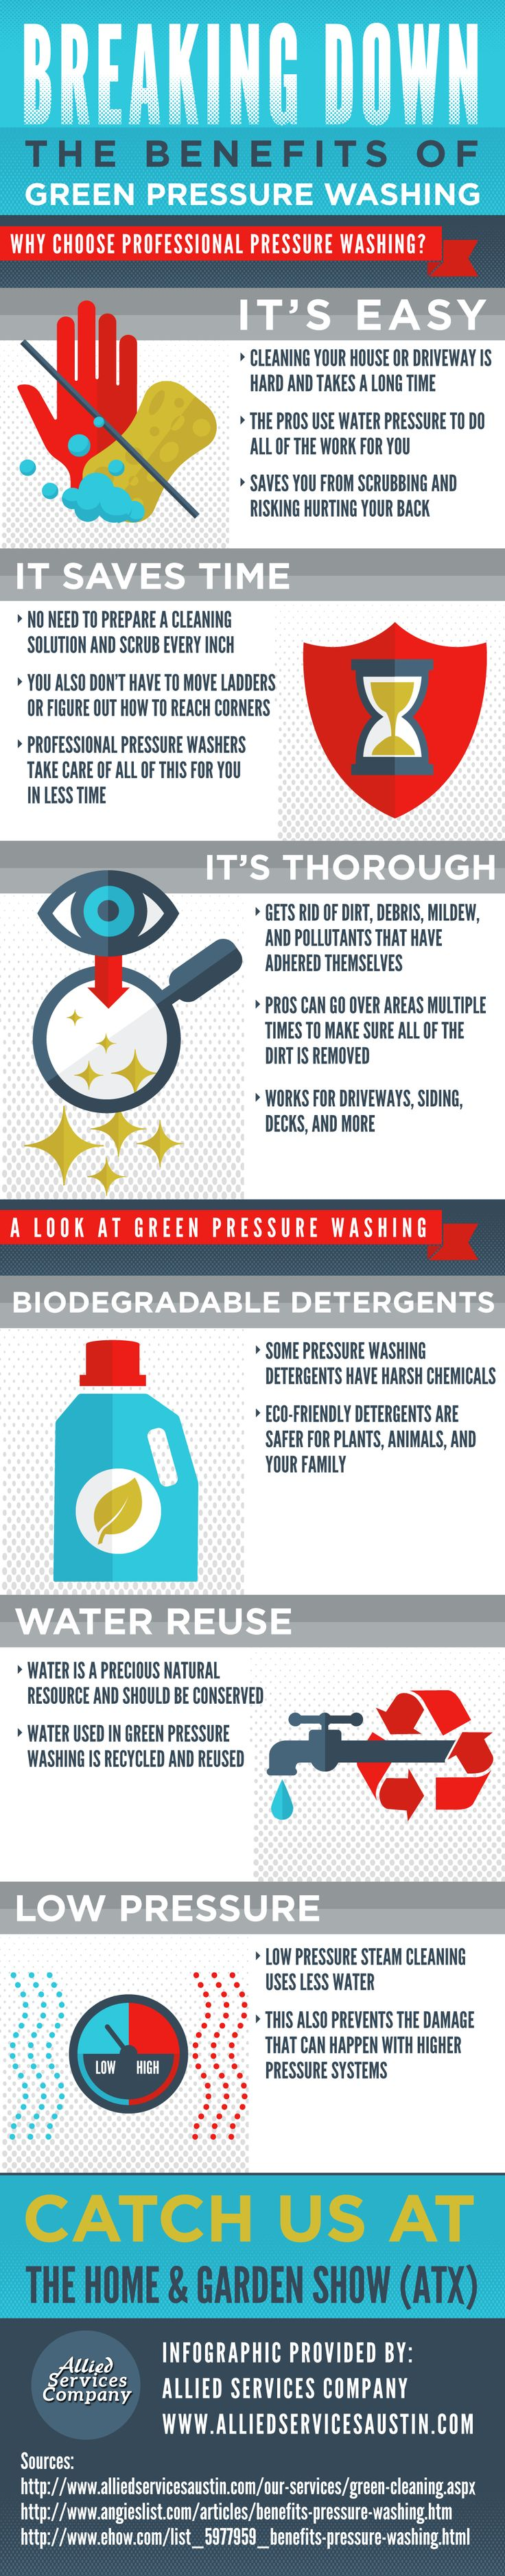 Did you know that some pressure washing detergents have harsh chemicals? Green pressure washing uses eco-friendly detergents that are safer for plants, animals, and your family! Learn more by reading through this infographic about power washing in Austin.